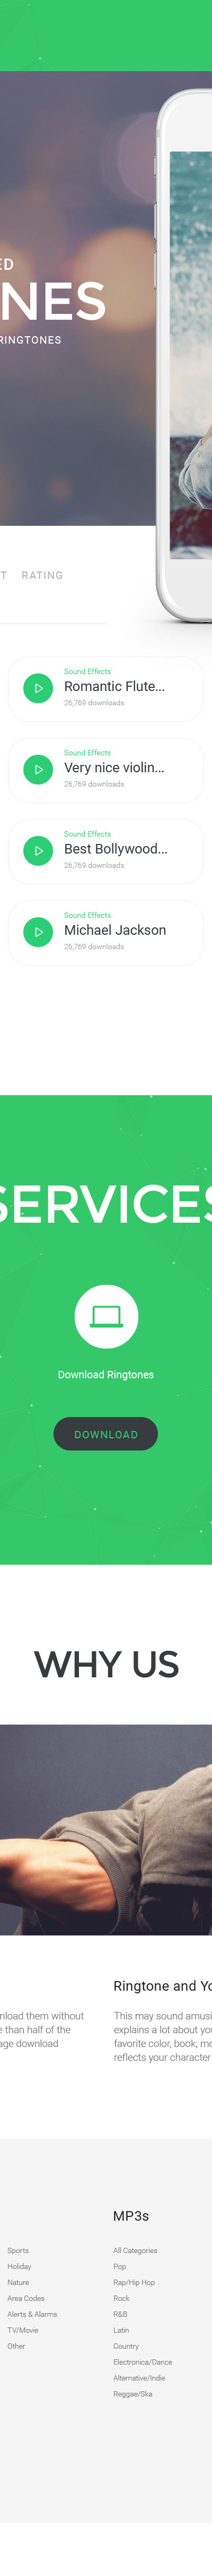 Ringtones Portal Website Template